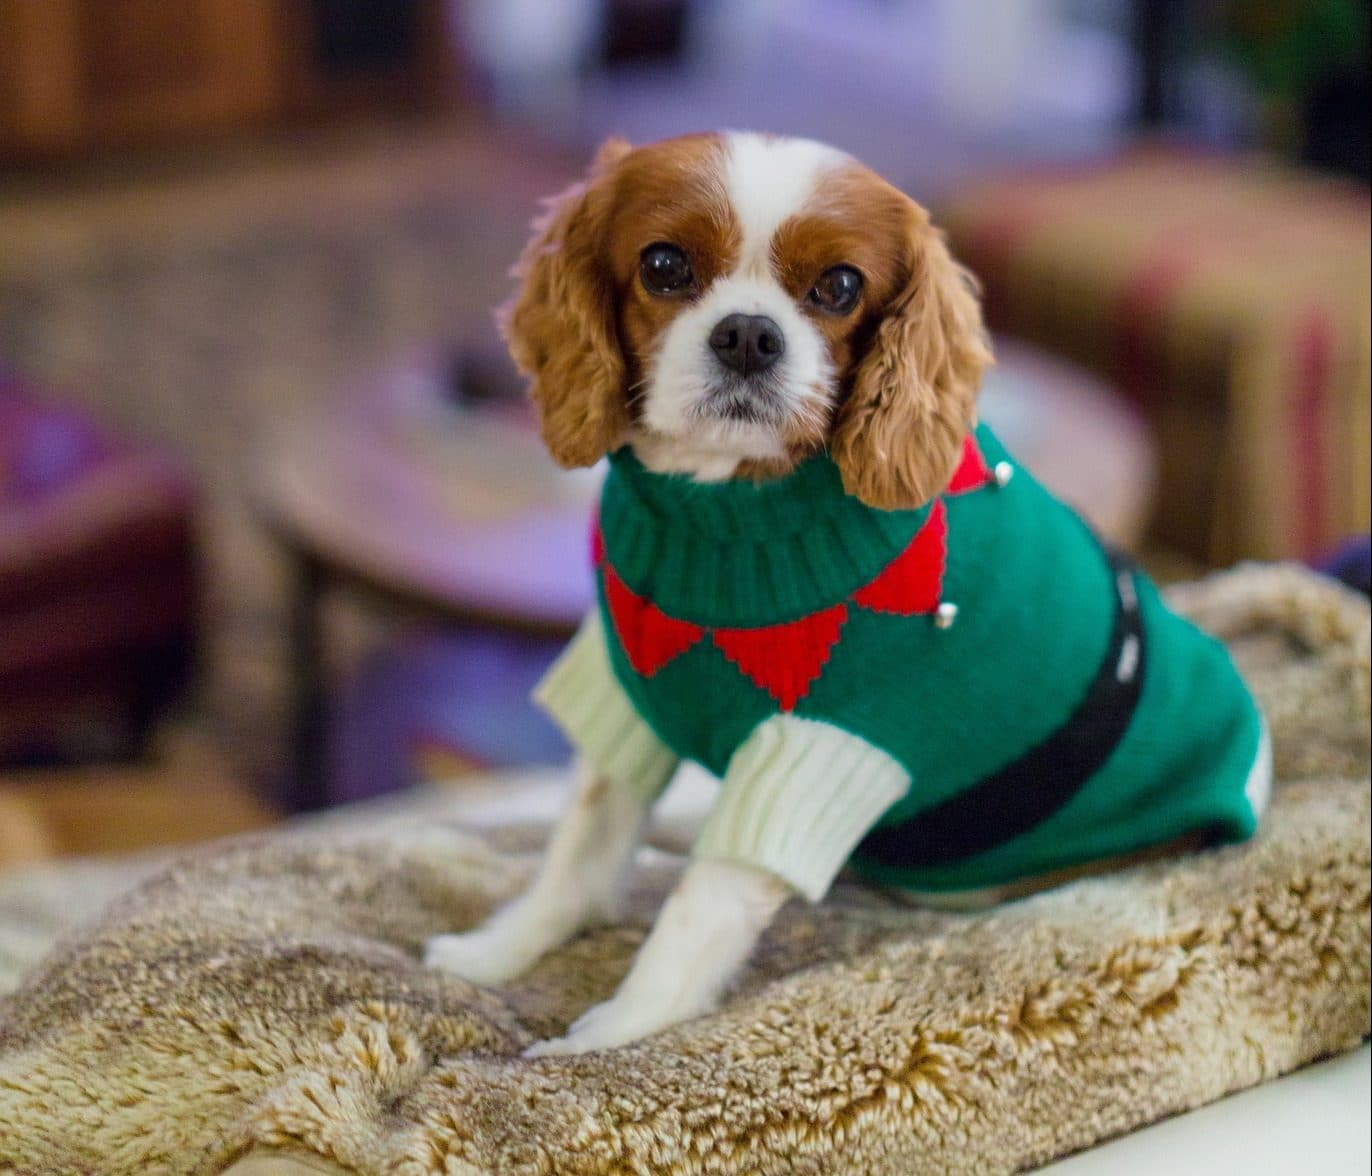 Holiday Dog Dress ~Christmas Lights ~Fancy Dog ~Puppy Dress ~Pet Apparel ~Dog Outfit ~Small Dog ~Cute Dog Clothes ~Christmas Dog Dress